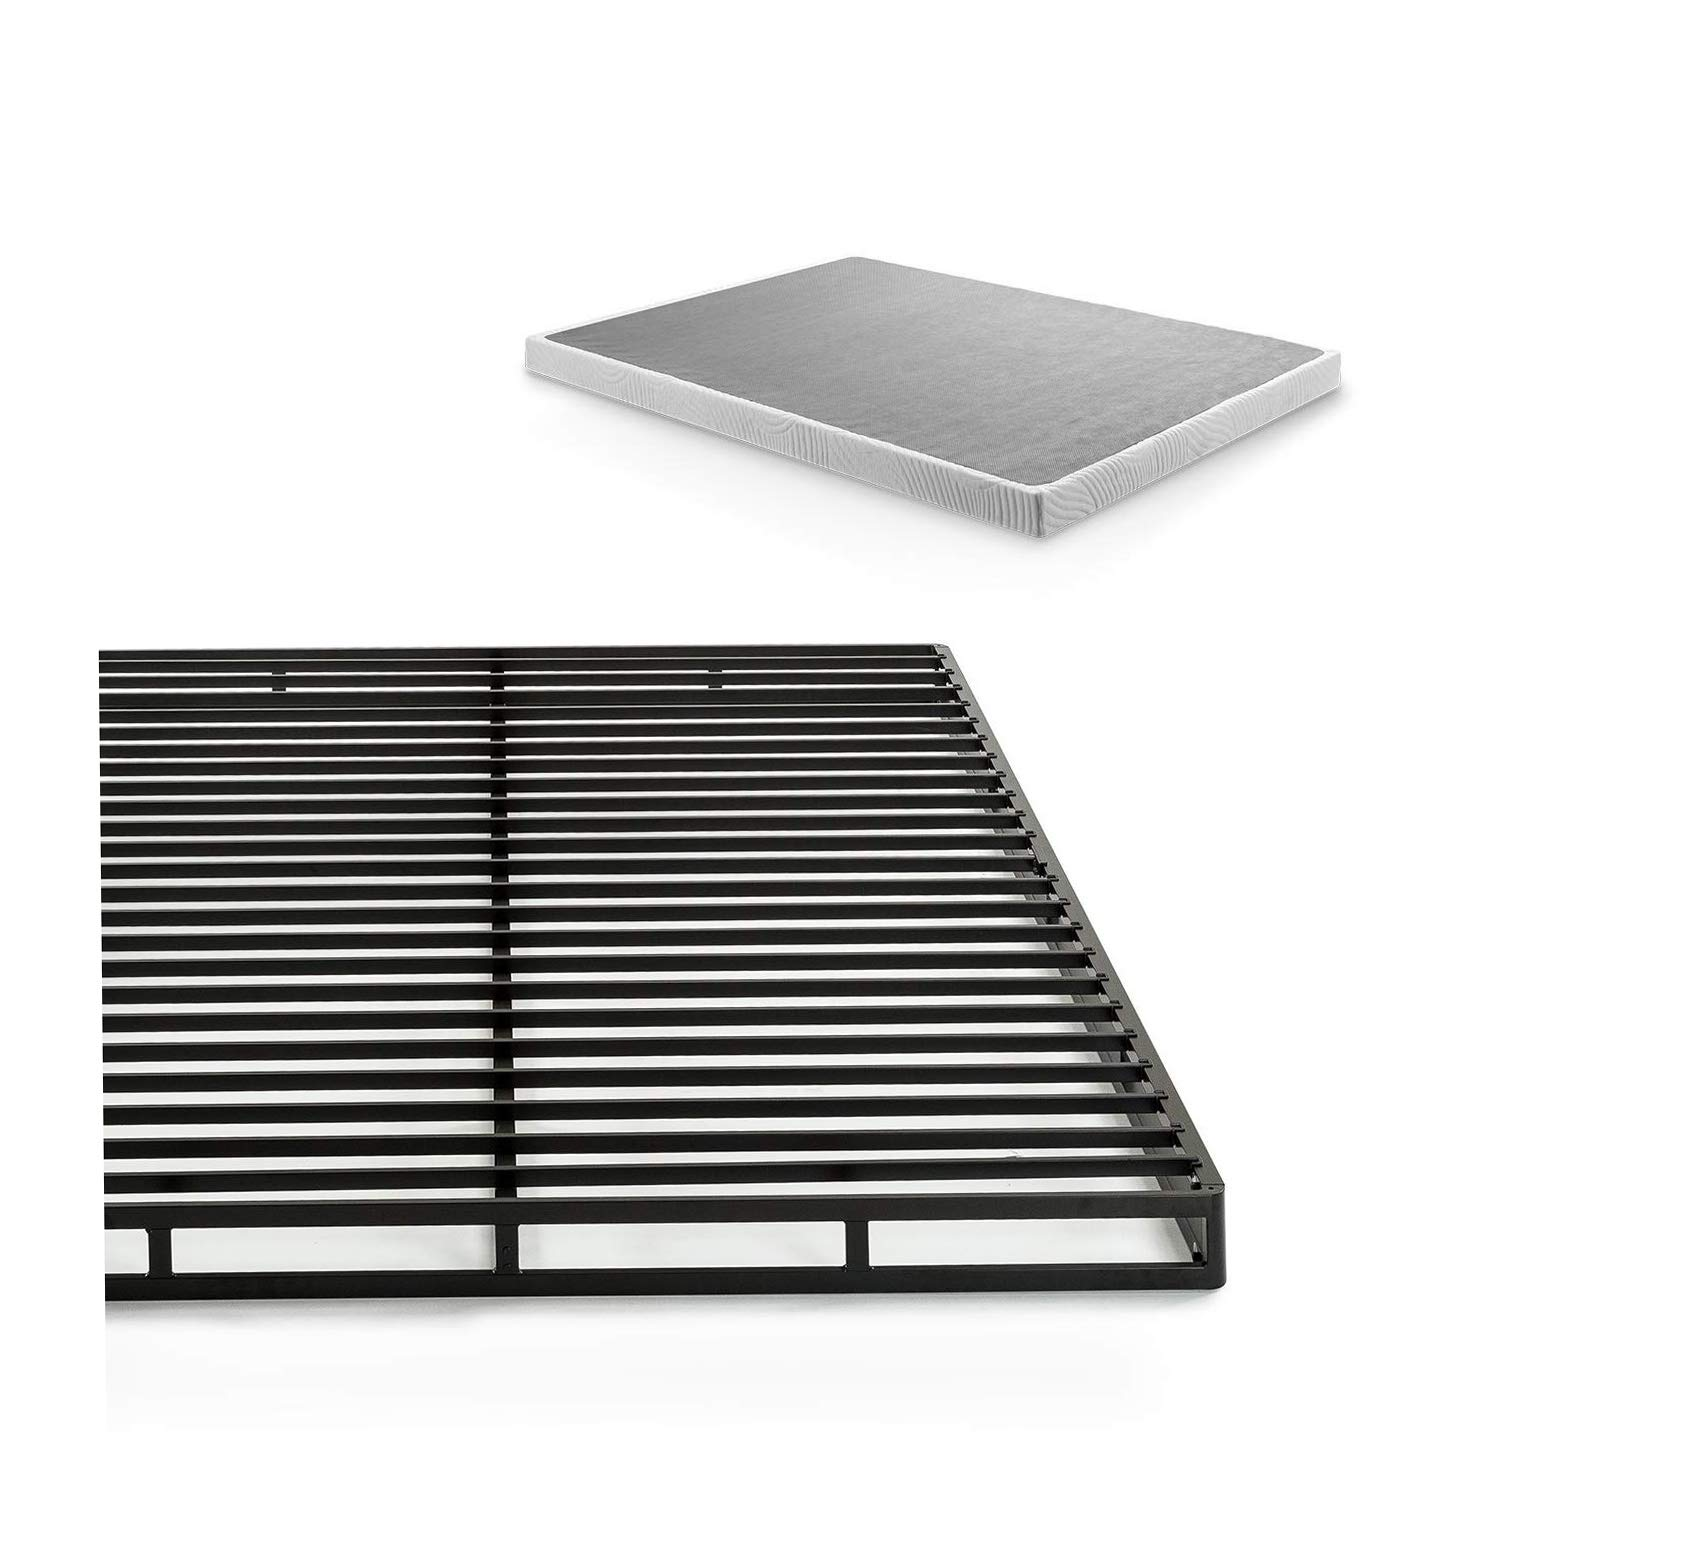 Wood & Style 4 Inch Low Profile Quick Lock Smart Box Spring/Mattress Foundation/Strong Steel Structure/Easy Assembly, Full Comfy Living Home Décor Furniture Heavy Duty by Wood & Style